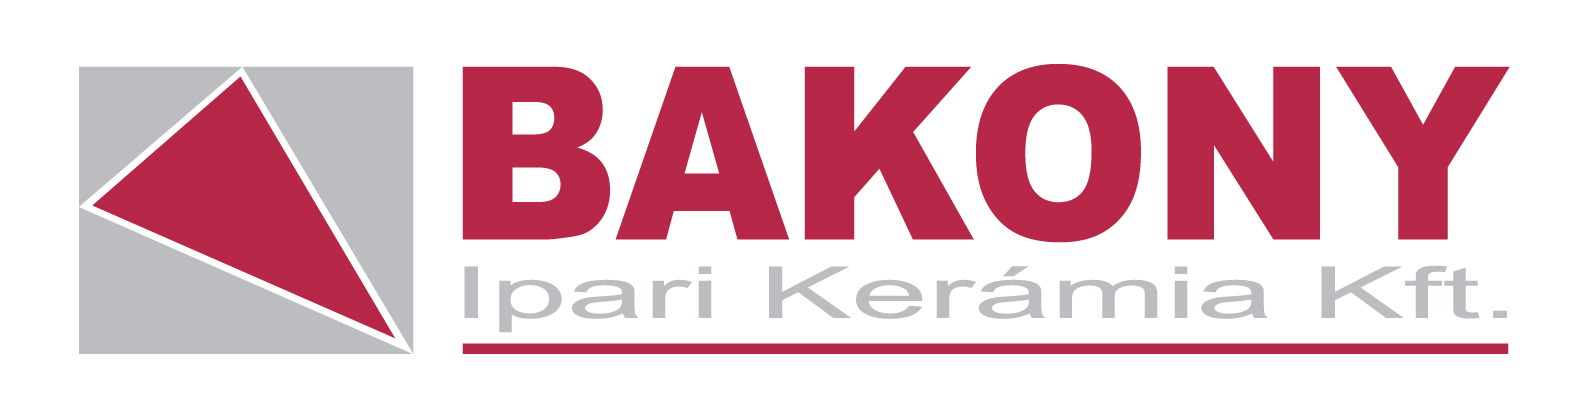 Bakony Technical Ceramics Ltd.